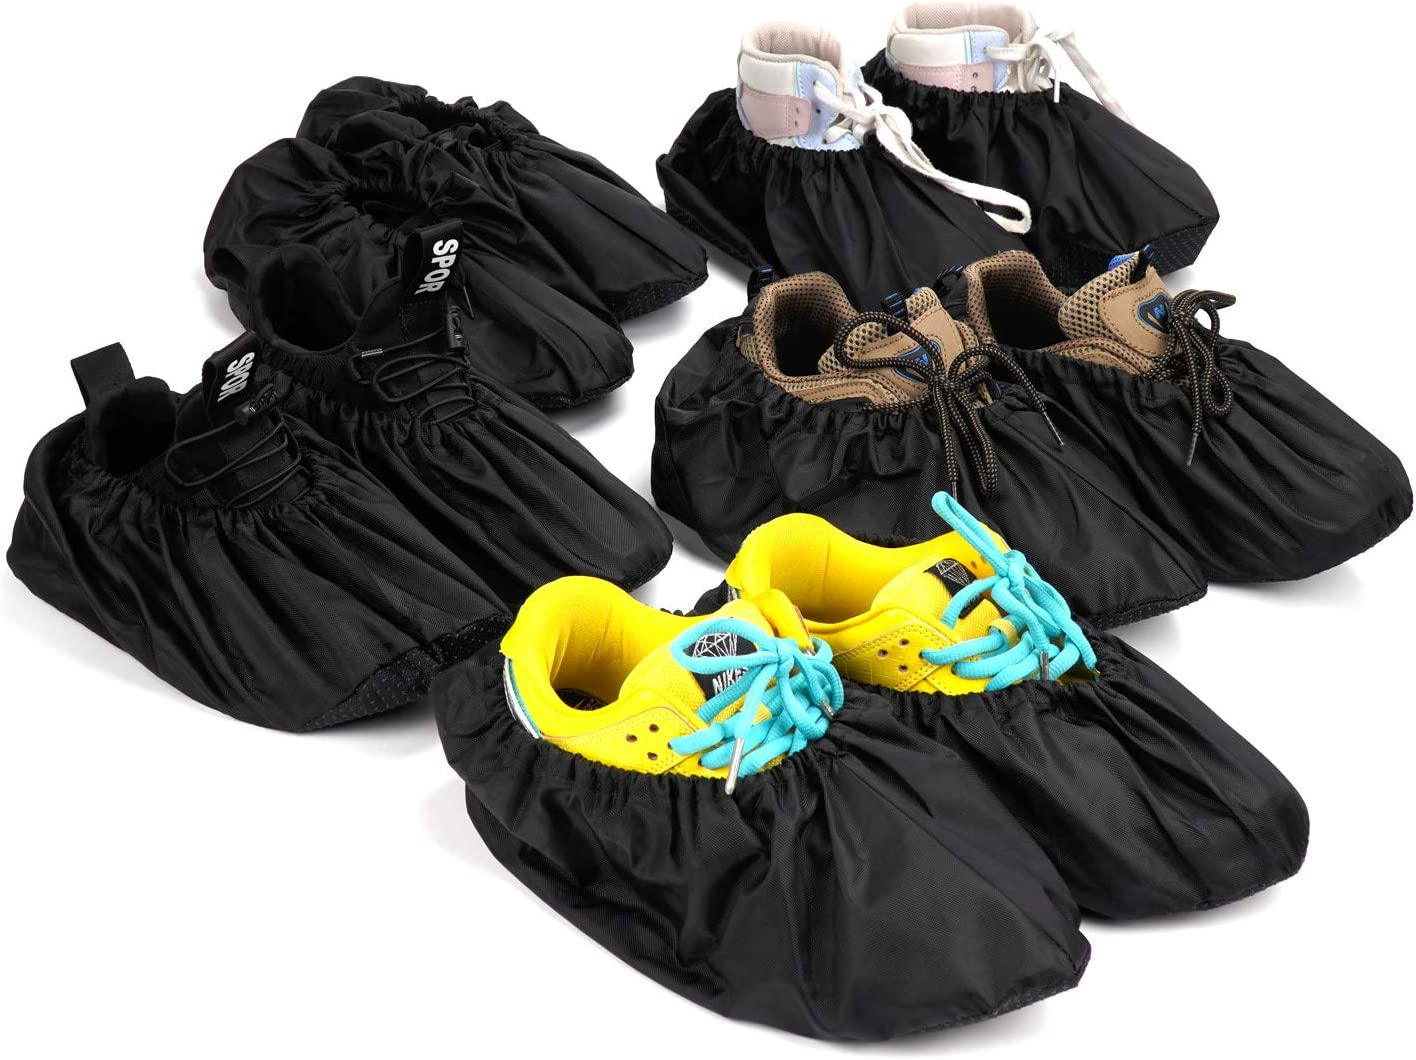 SCKOSC 5 Pairs Shoe Covers Non Protect Slip Reusable Very All items free shipping popular Booties For